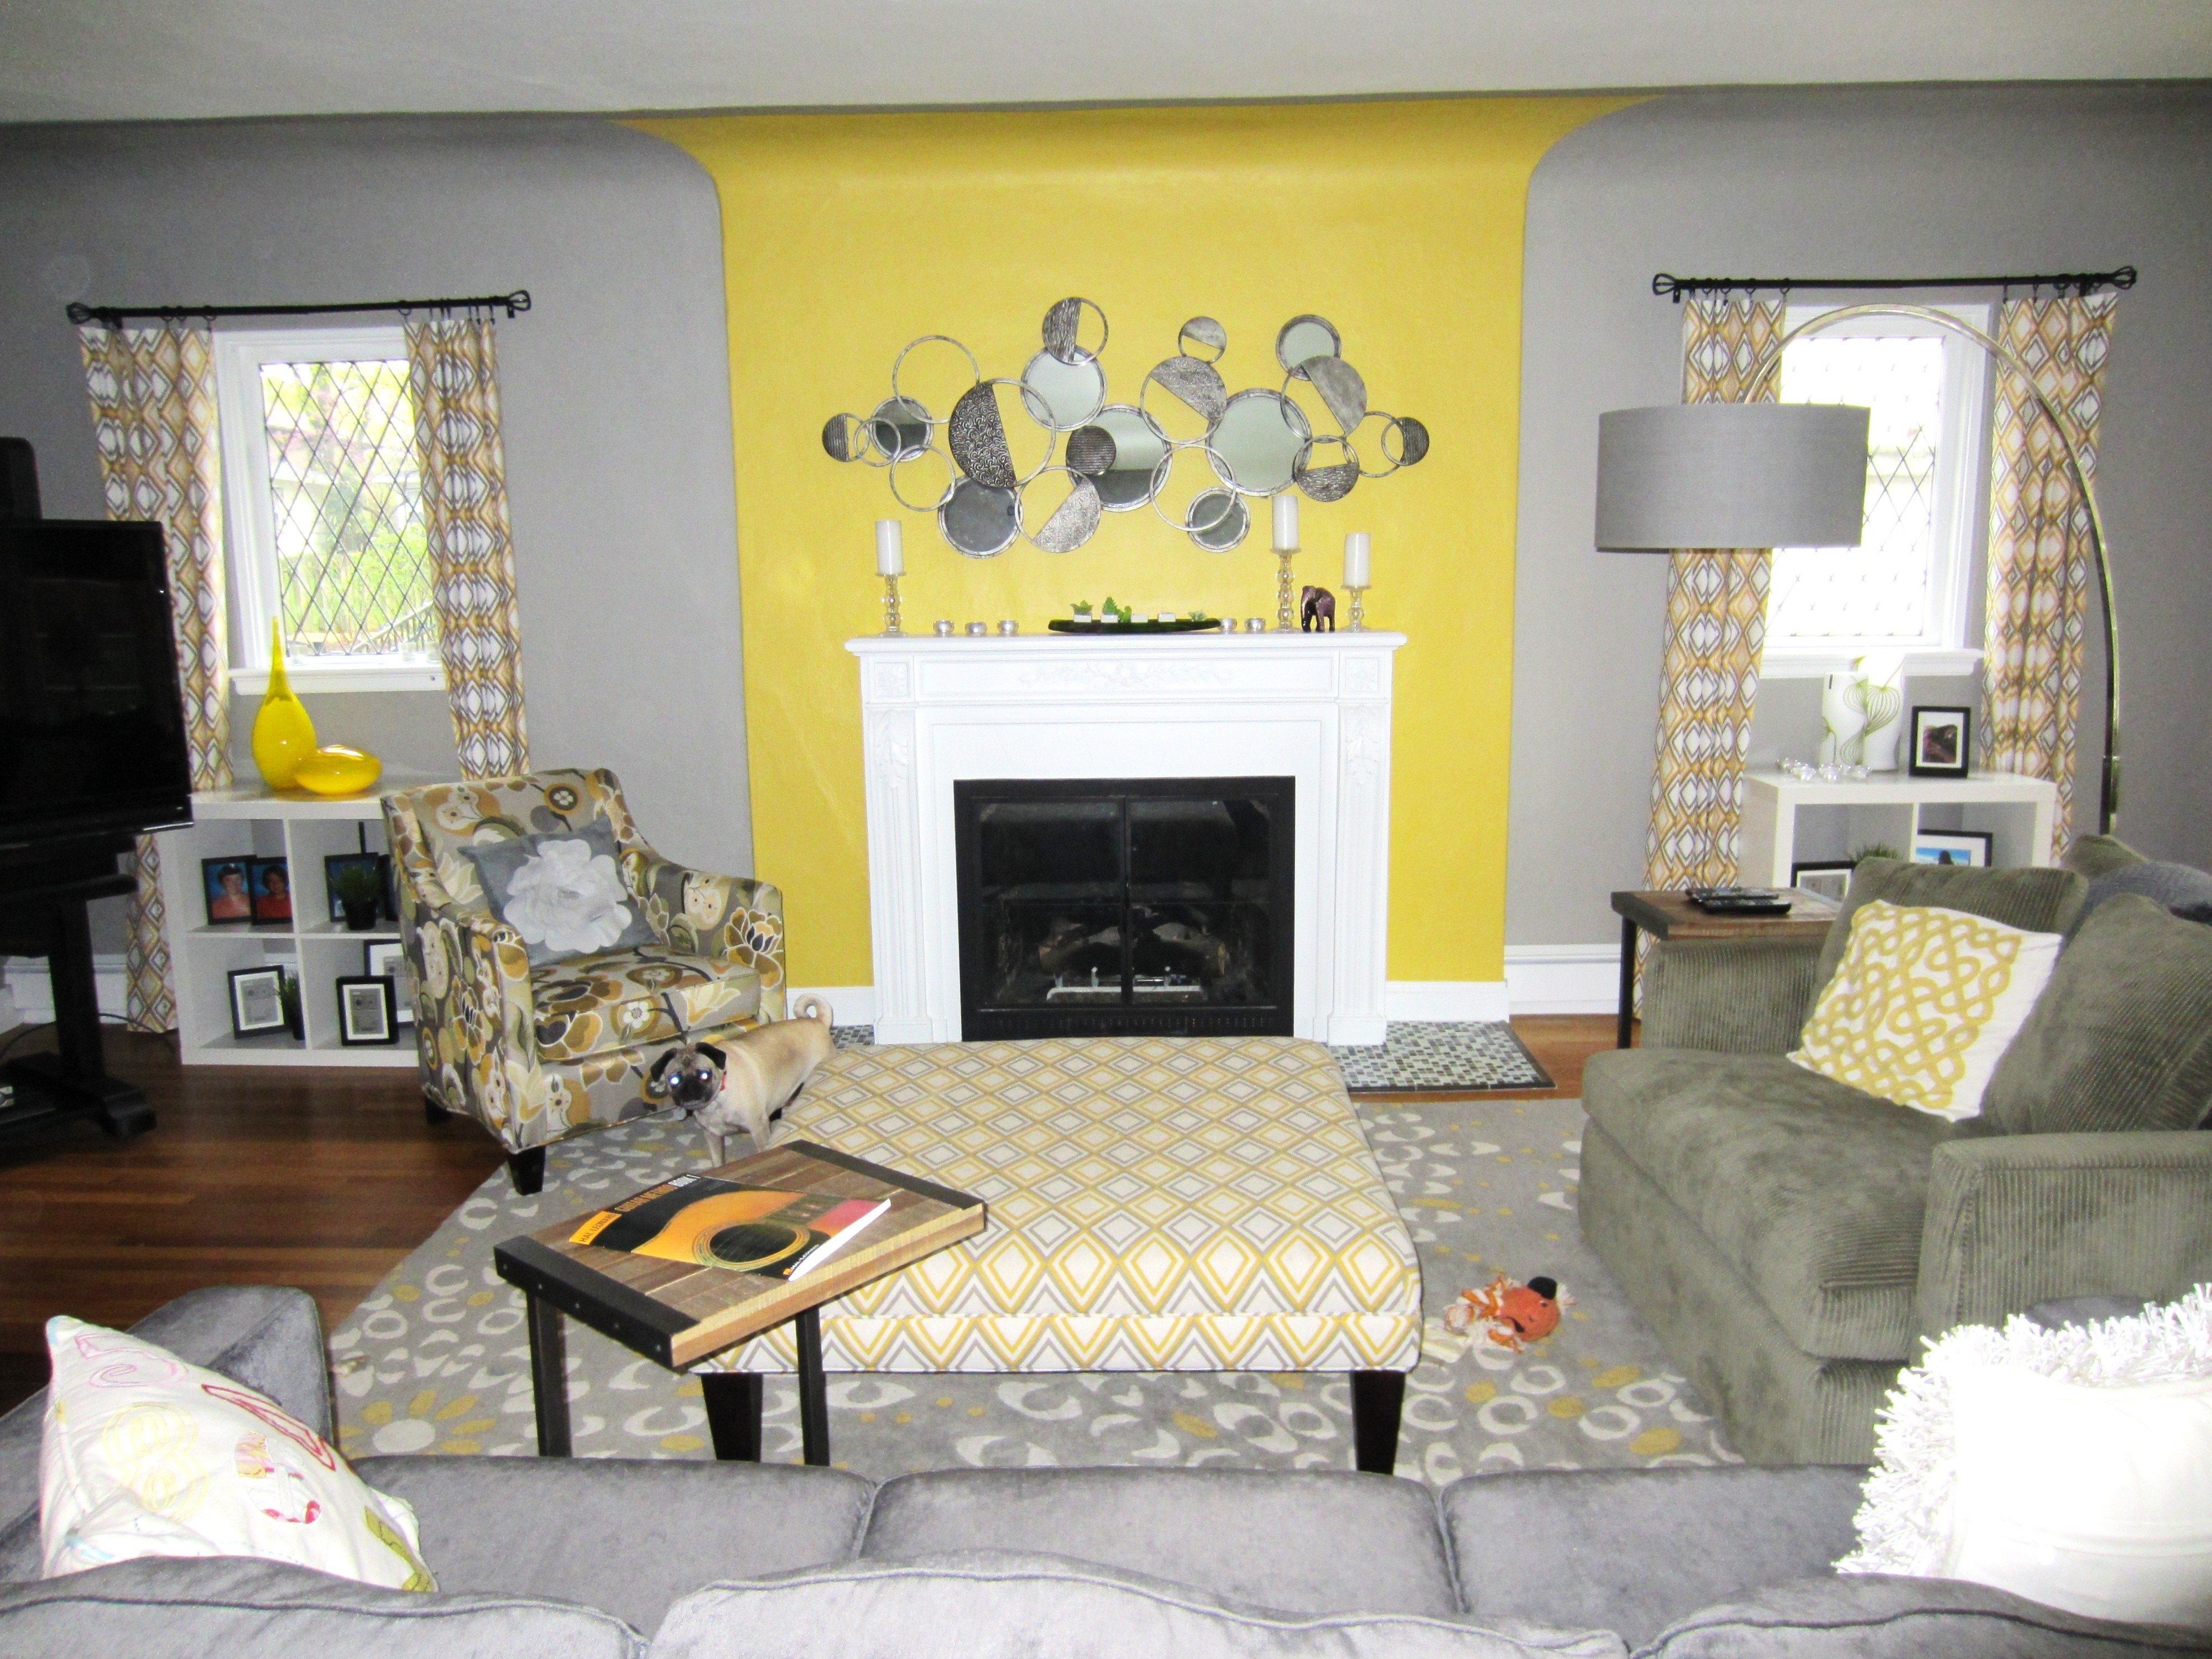 10 Beautiful Grey And Yellow Living Room Ideas yellow and grey living room beautiful interior design gray bedroom 2020